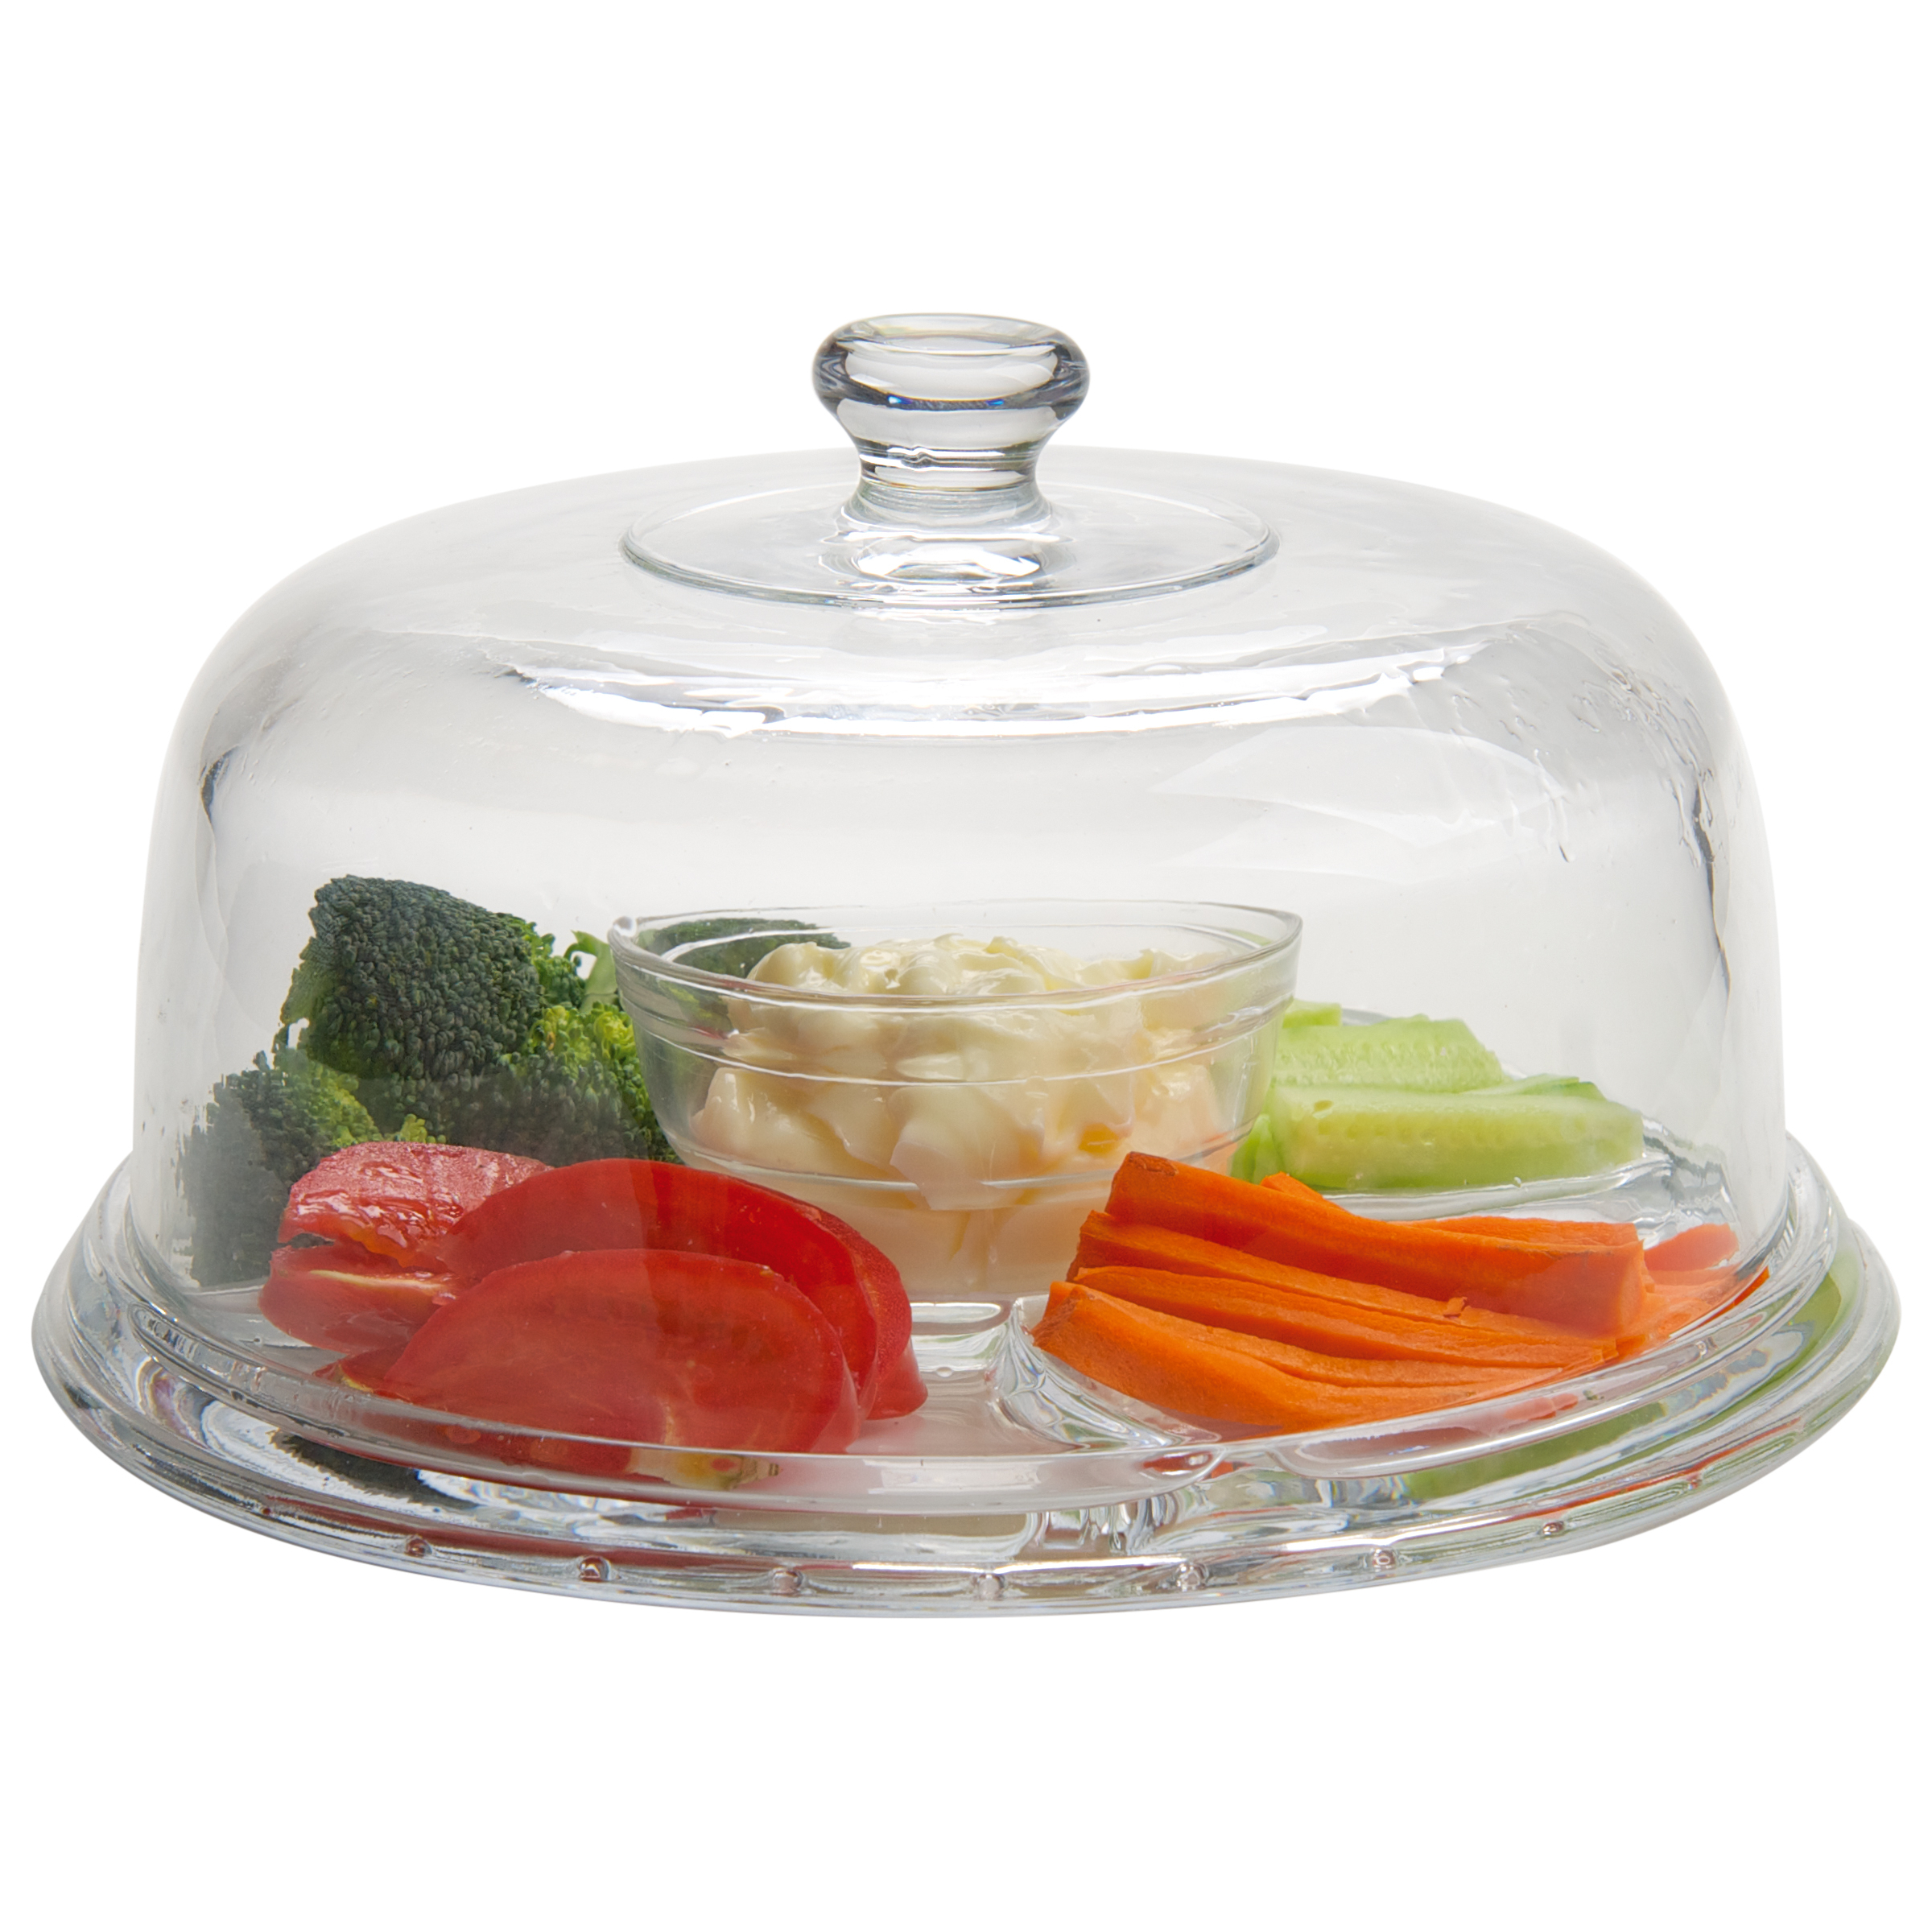 Artland American Diner 6-in-1 Glass Cake Dome Server